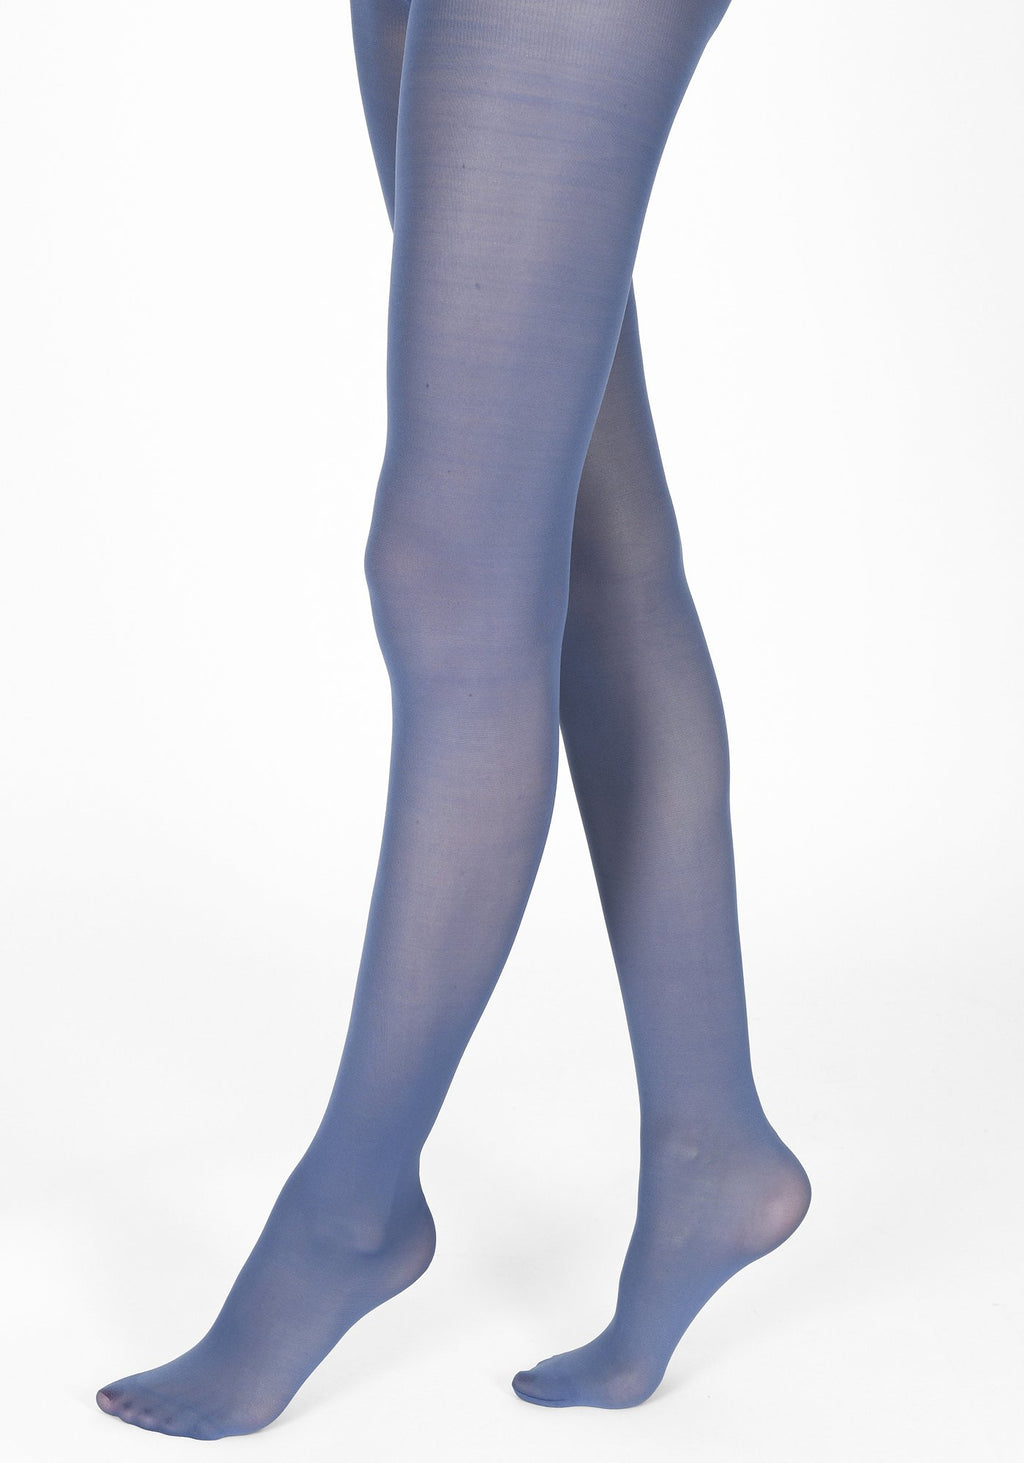 infinity blue tights 40 denier 1